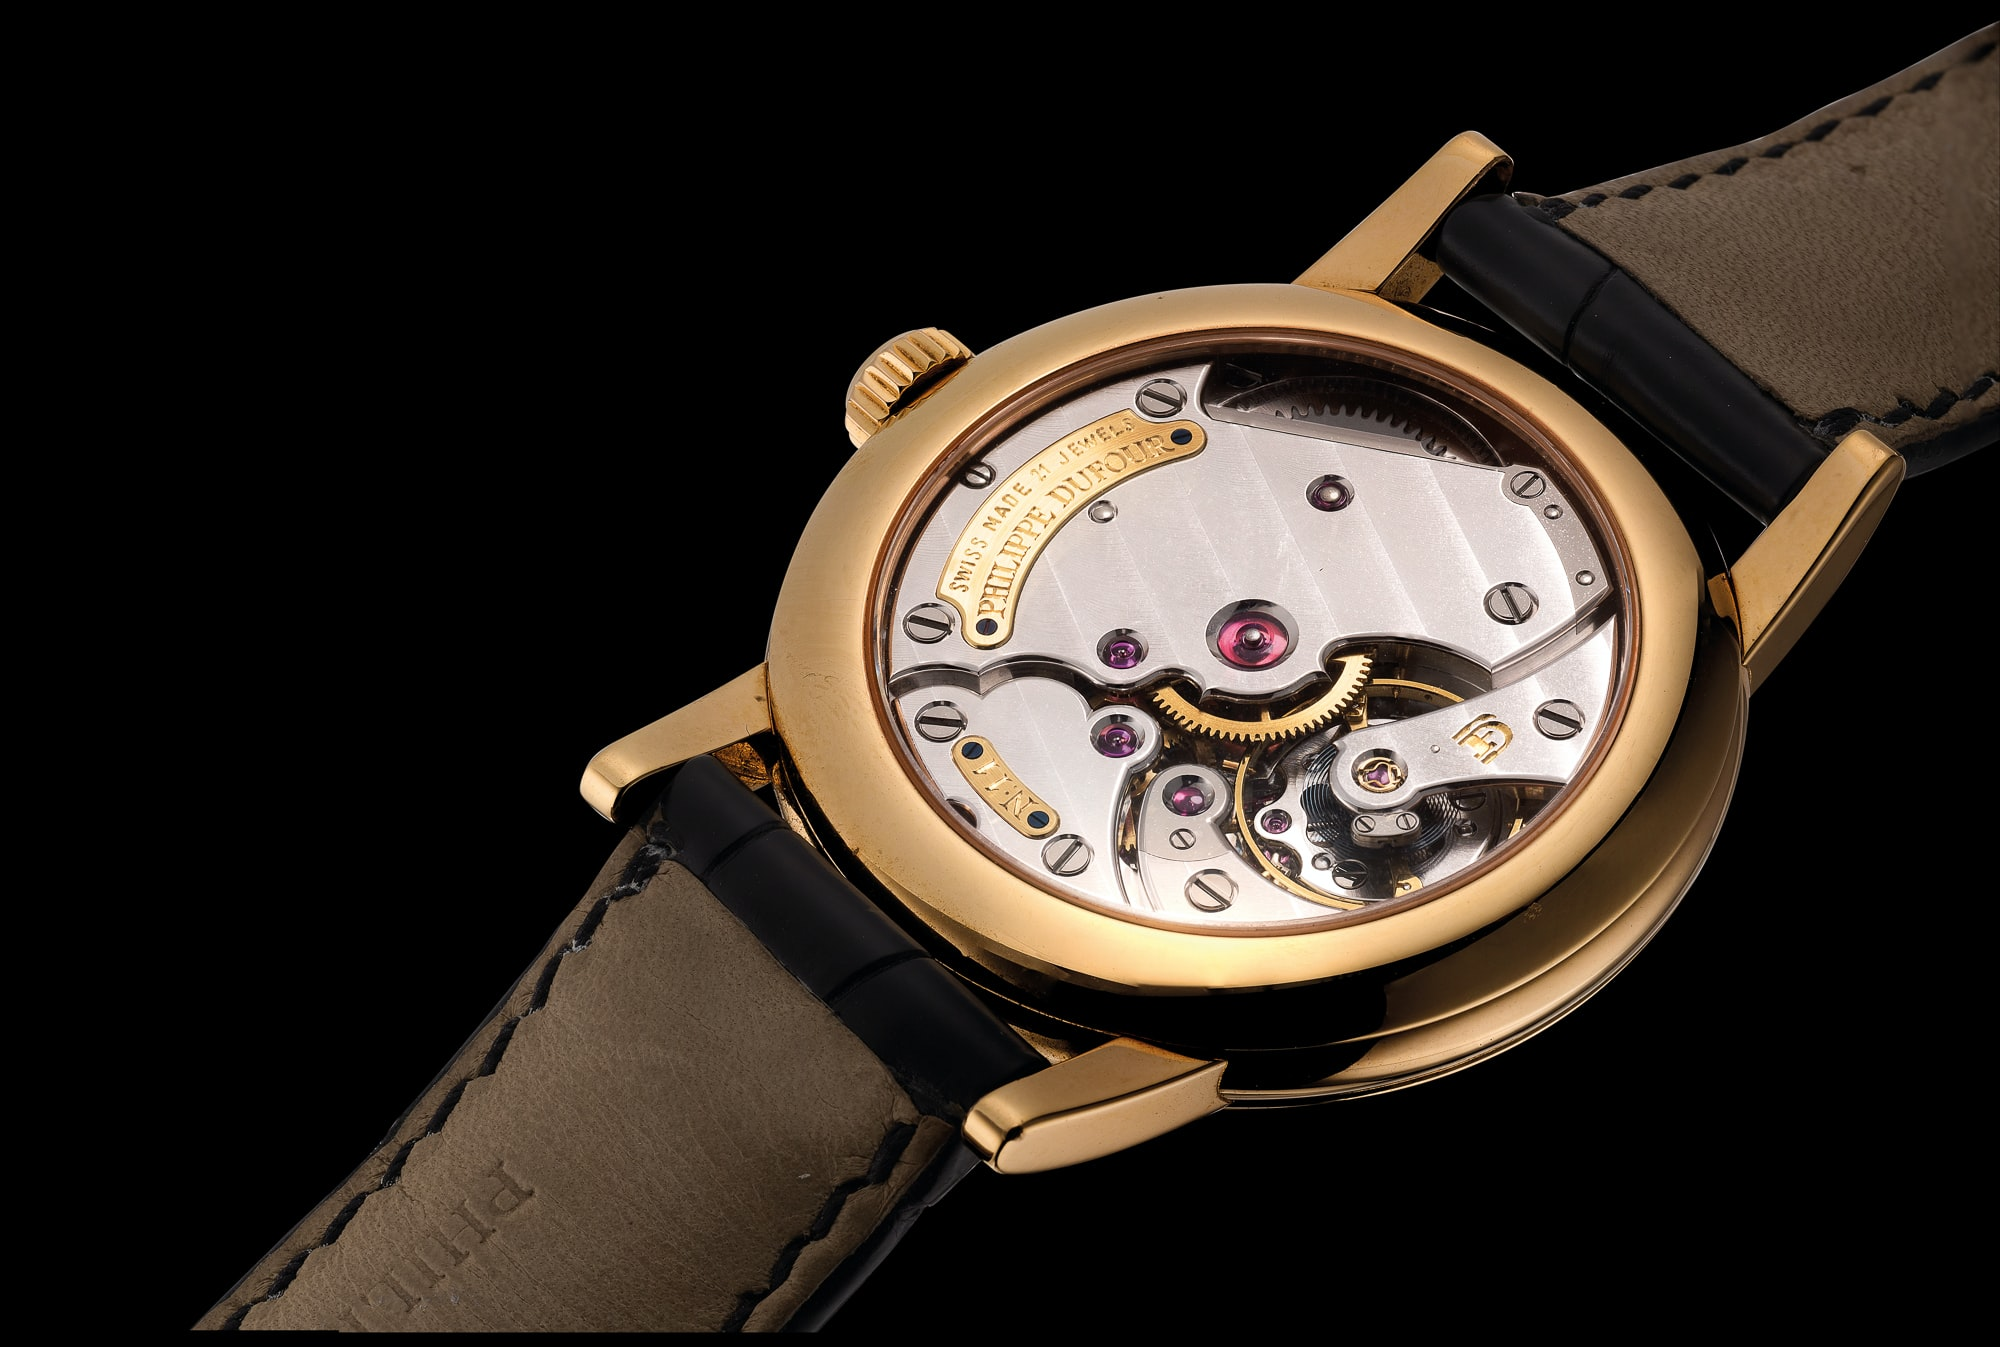 philippe dufour caliber 11 movement The Very First Philippe Dufour Simplicity To Be Sold At Auction Next Week (And The Second, And The Third) The Very First Philippe Dufour Simplicity To Be Sold At Auction Next Week (And The Second, And The Third) DufourSimplicity 4